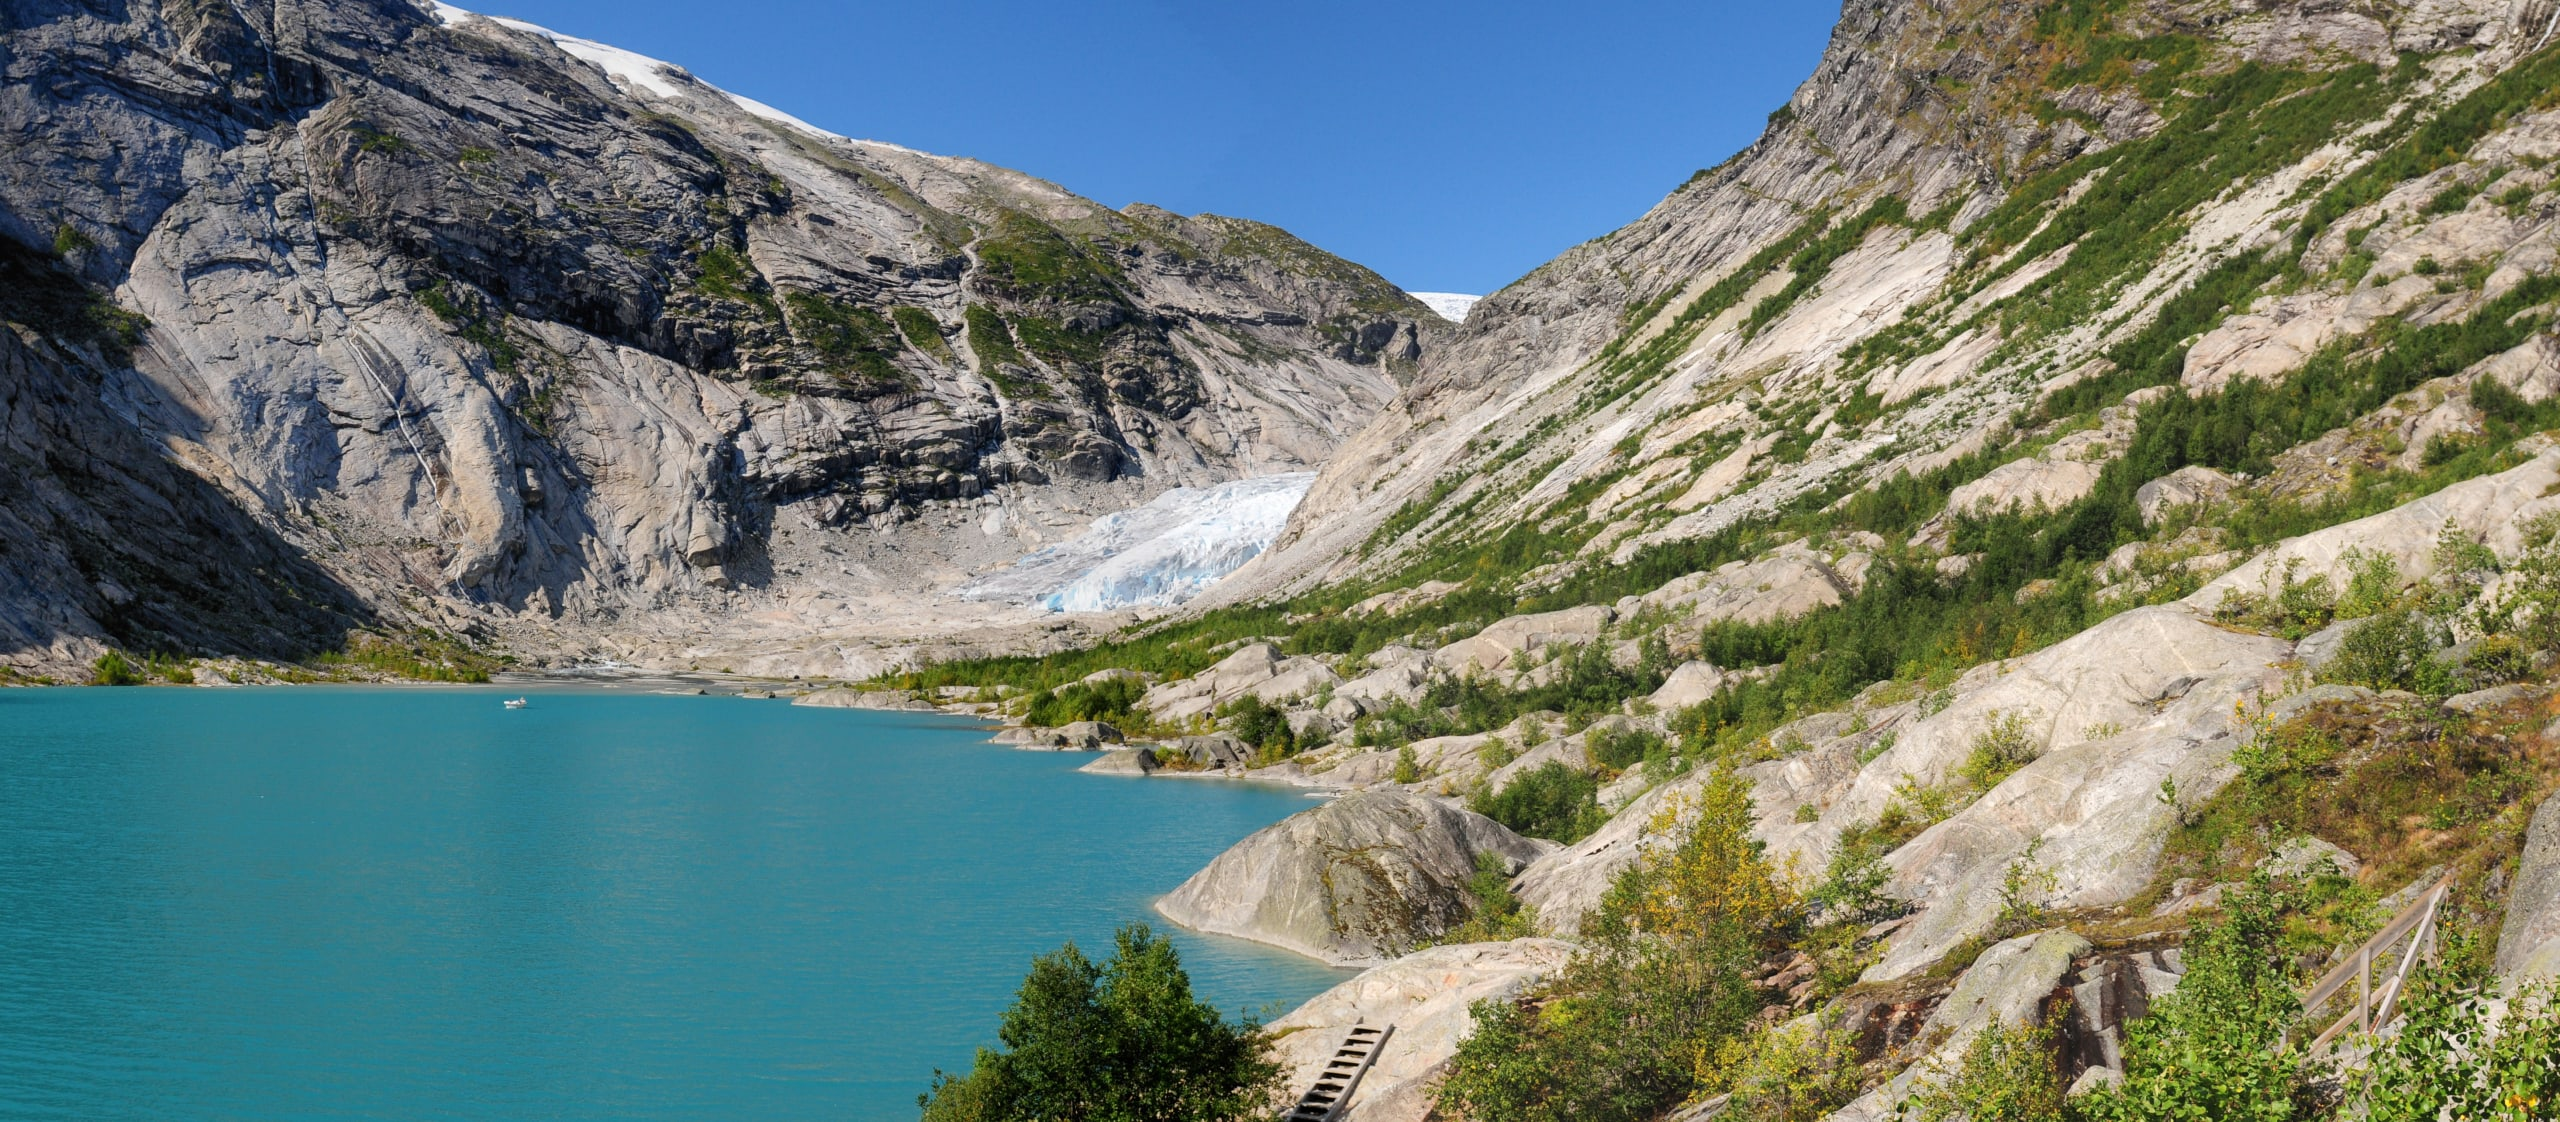 Nigardsbrevatnet lake in Jostedalsbreen National Park